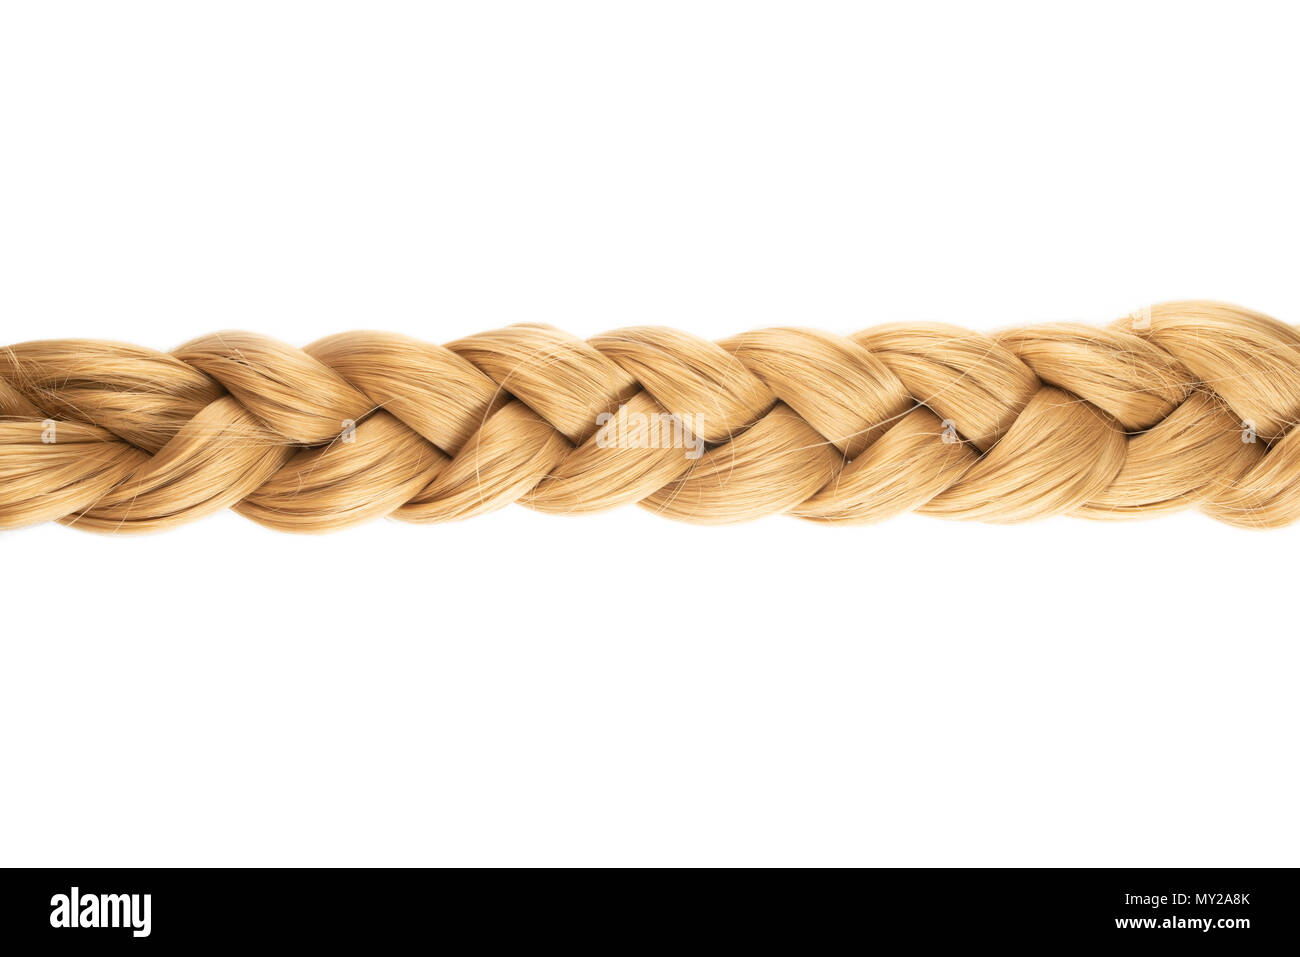 blond plait or braid of blond hair on white background - Stock Image